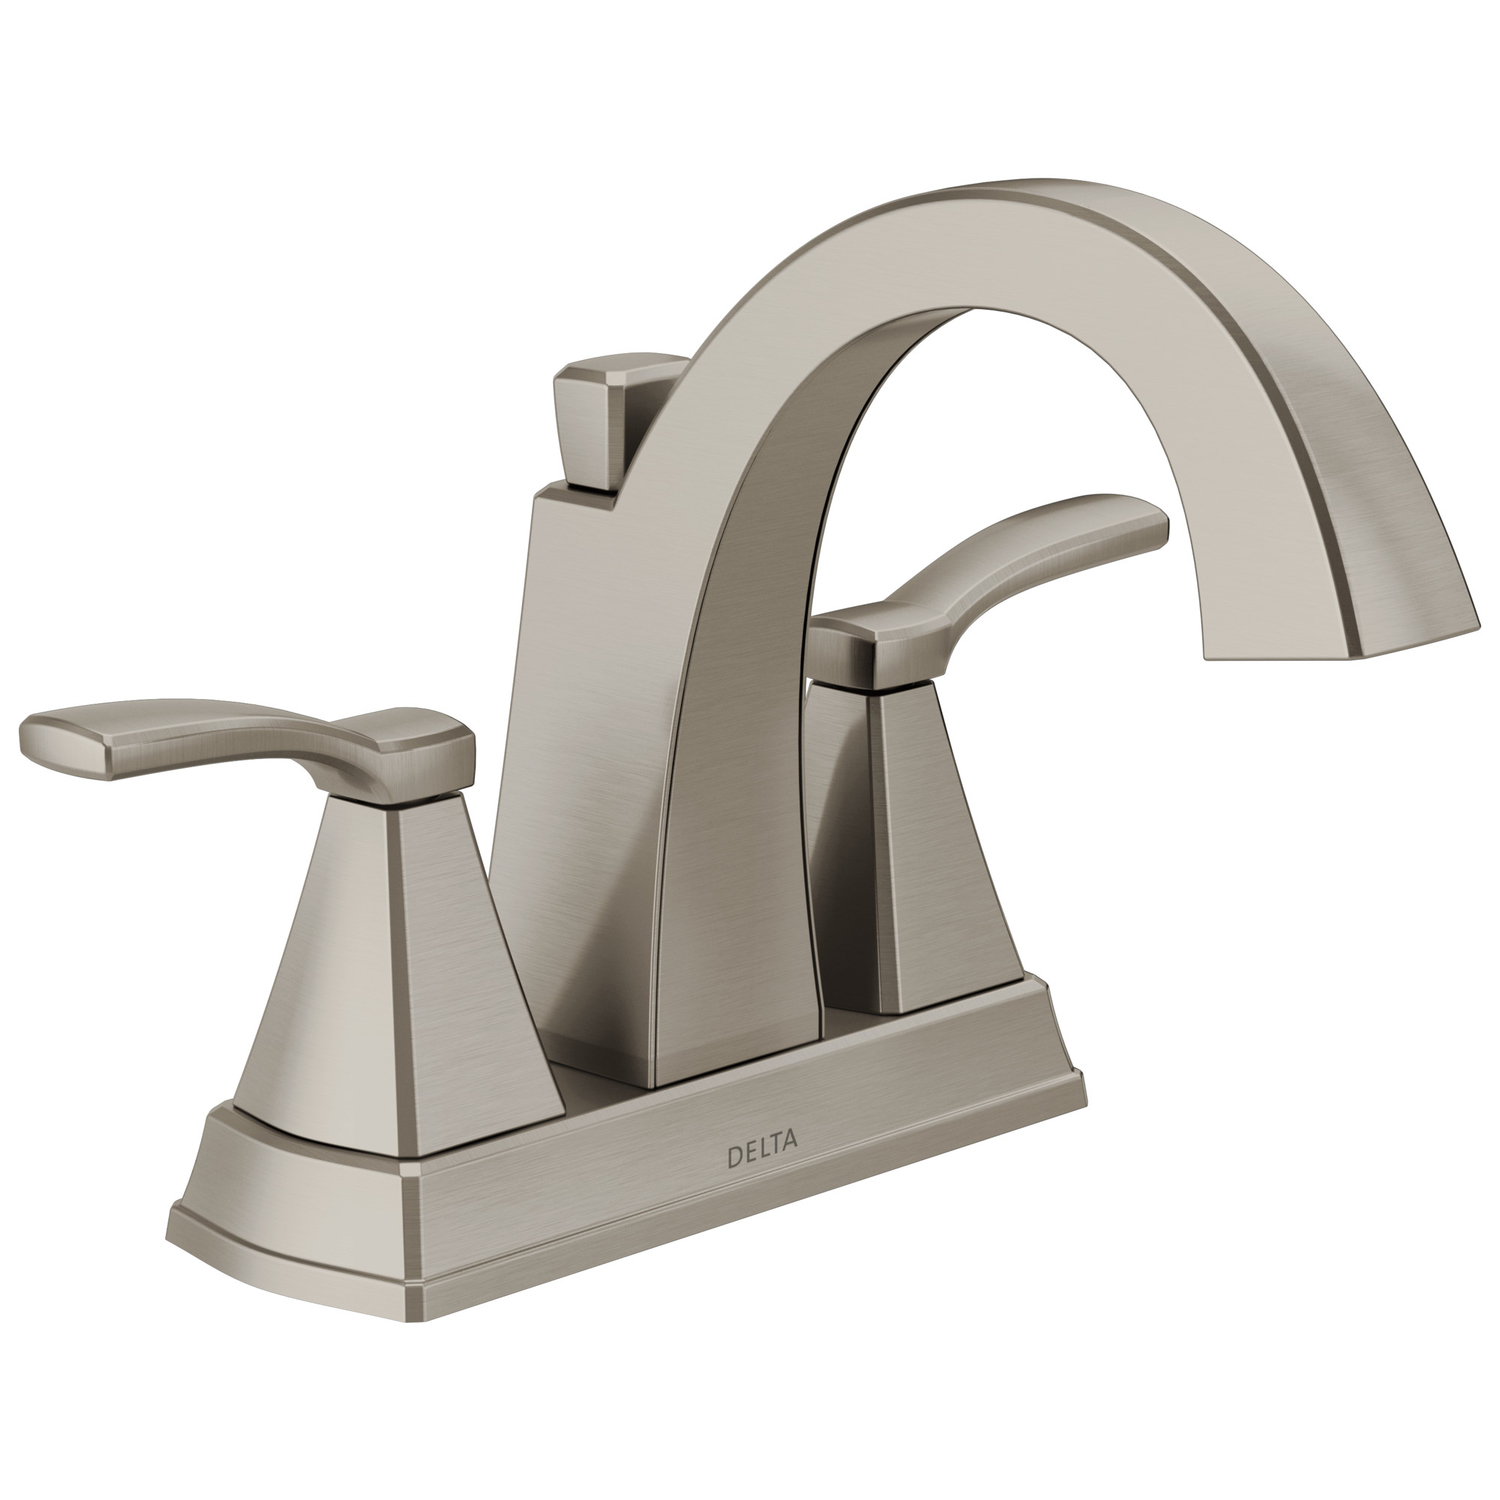 delta flynn stainless steel two handle lavatory faucet 4 in